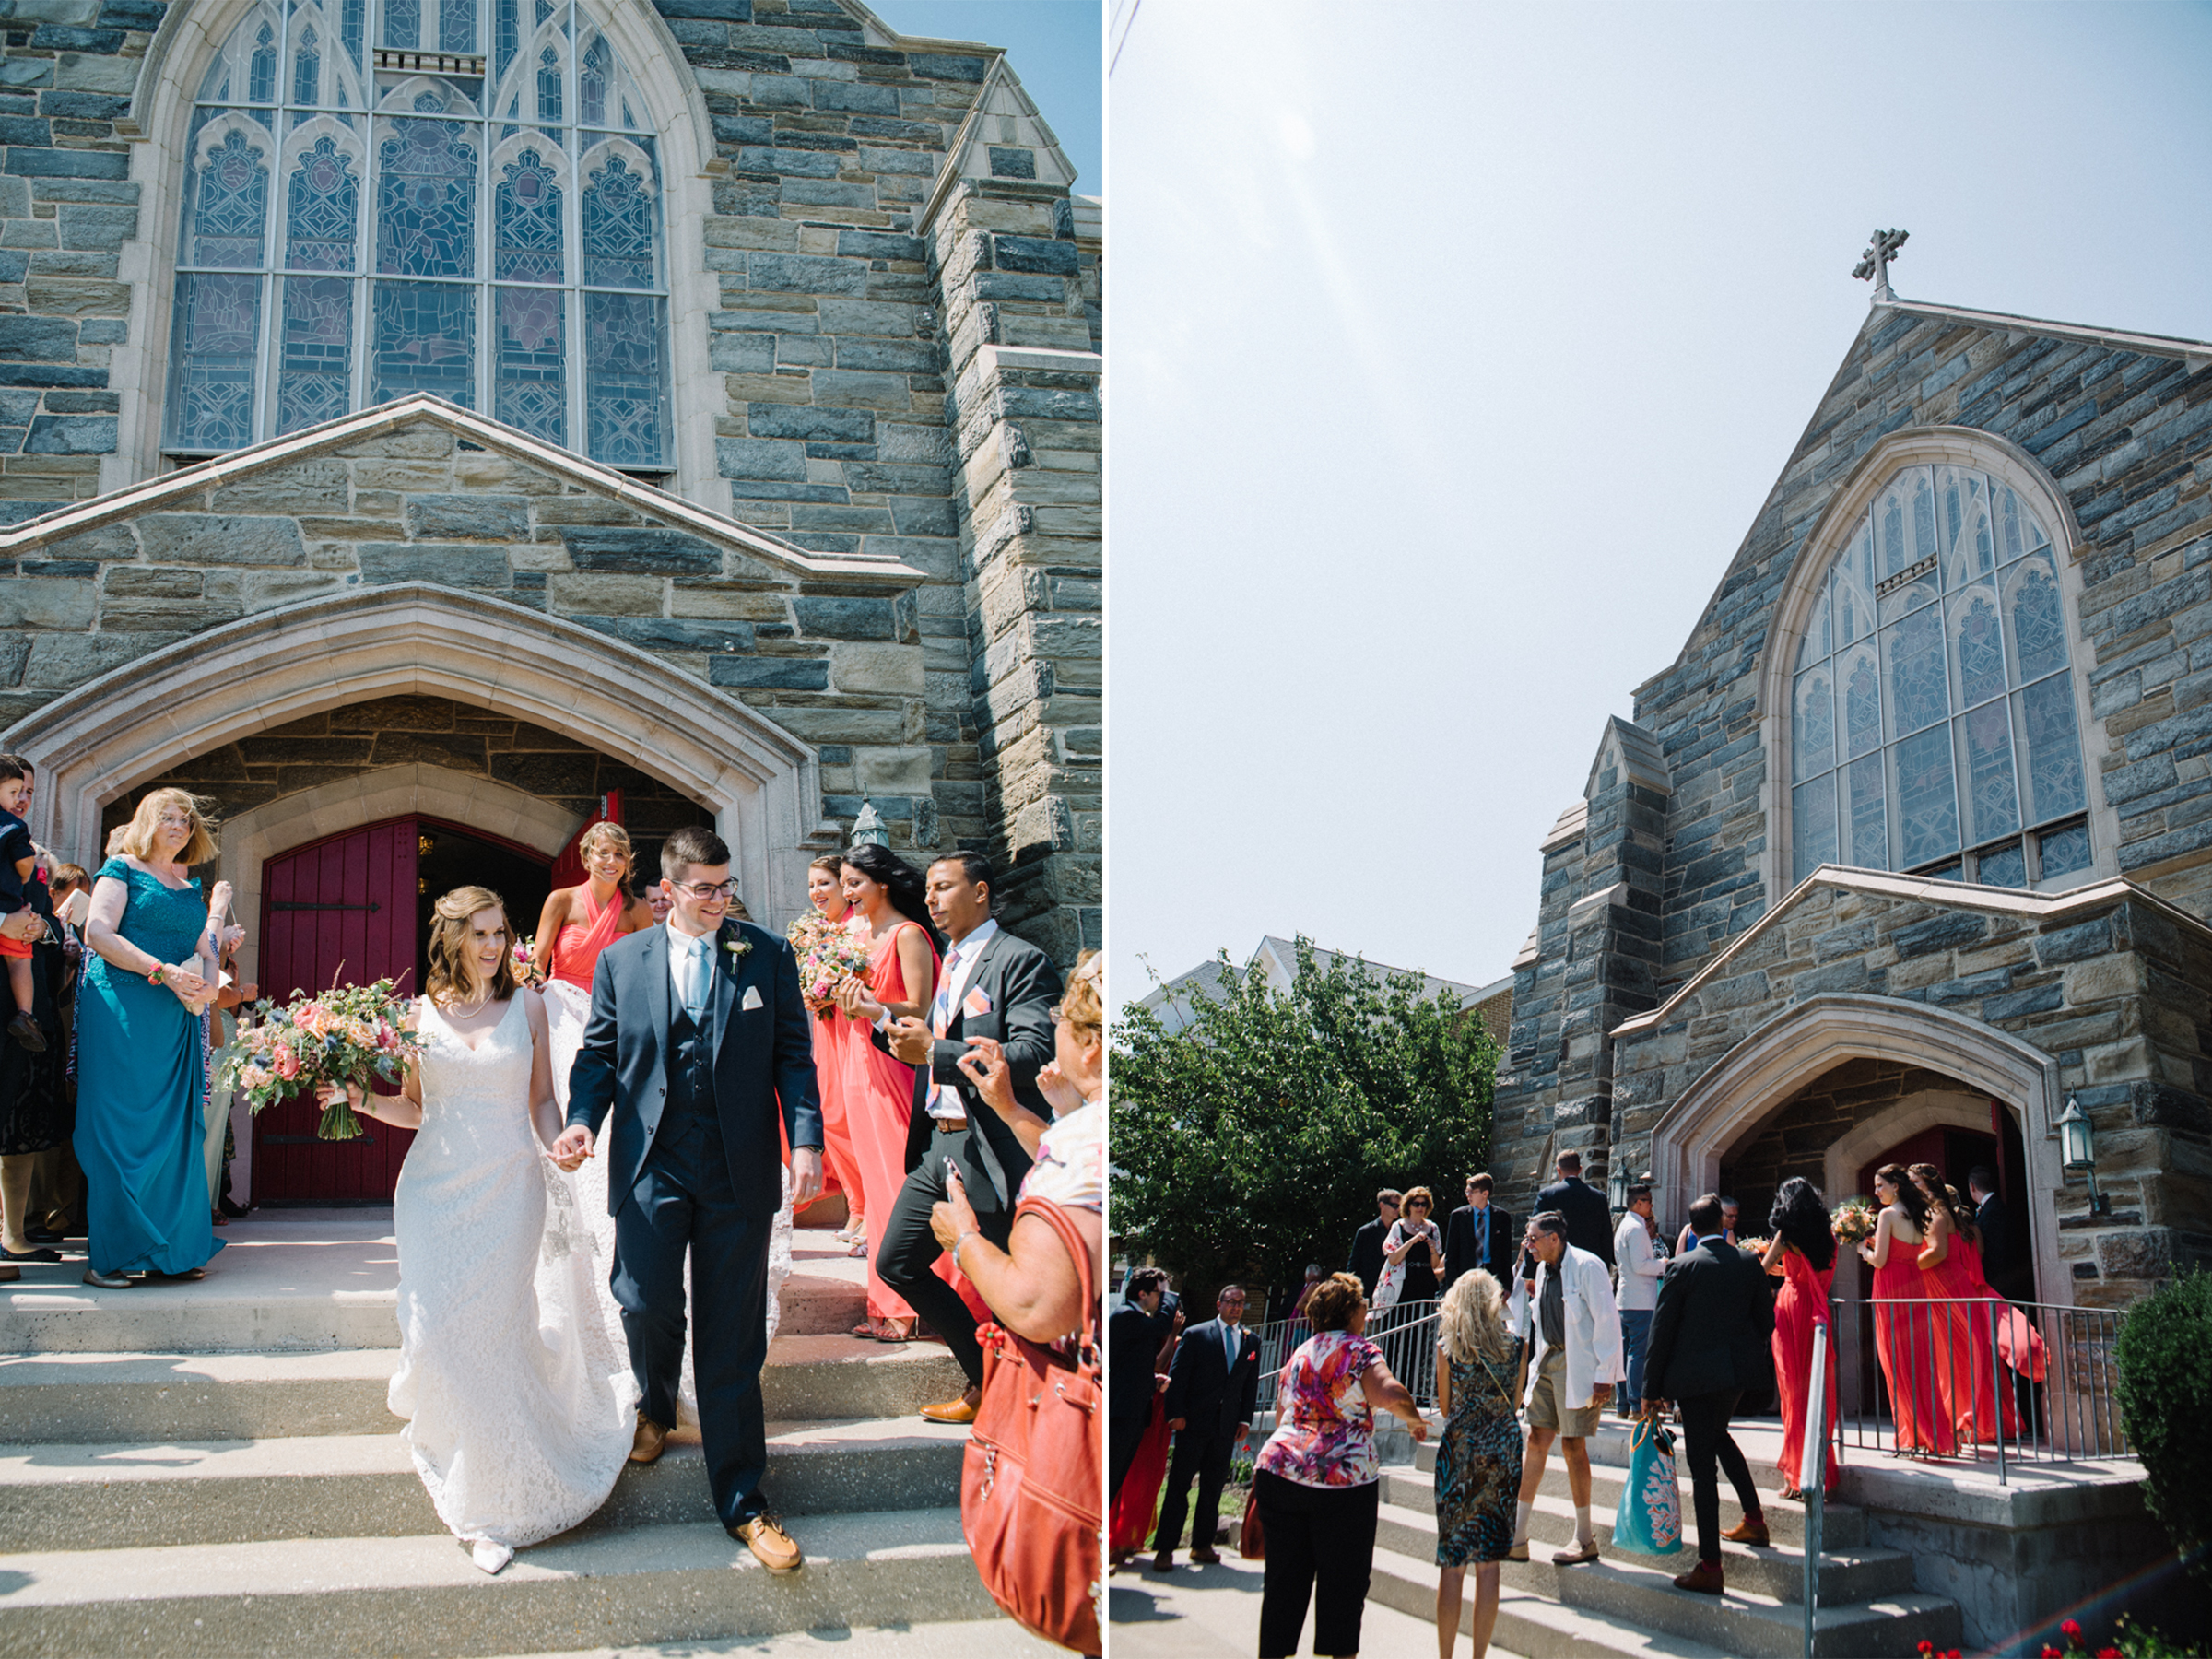 Carolyn+Dominic-Bride and Groom Exit Church- Mr and Mrs- Congress Hall Wedding- Cape May New Jersey- Olivia Christina Photo-1-2.JPG